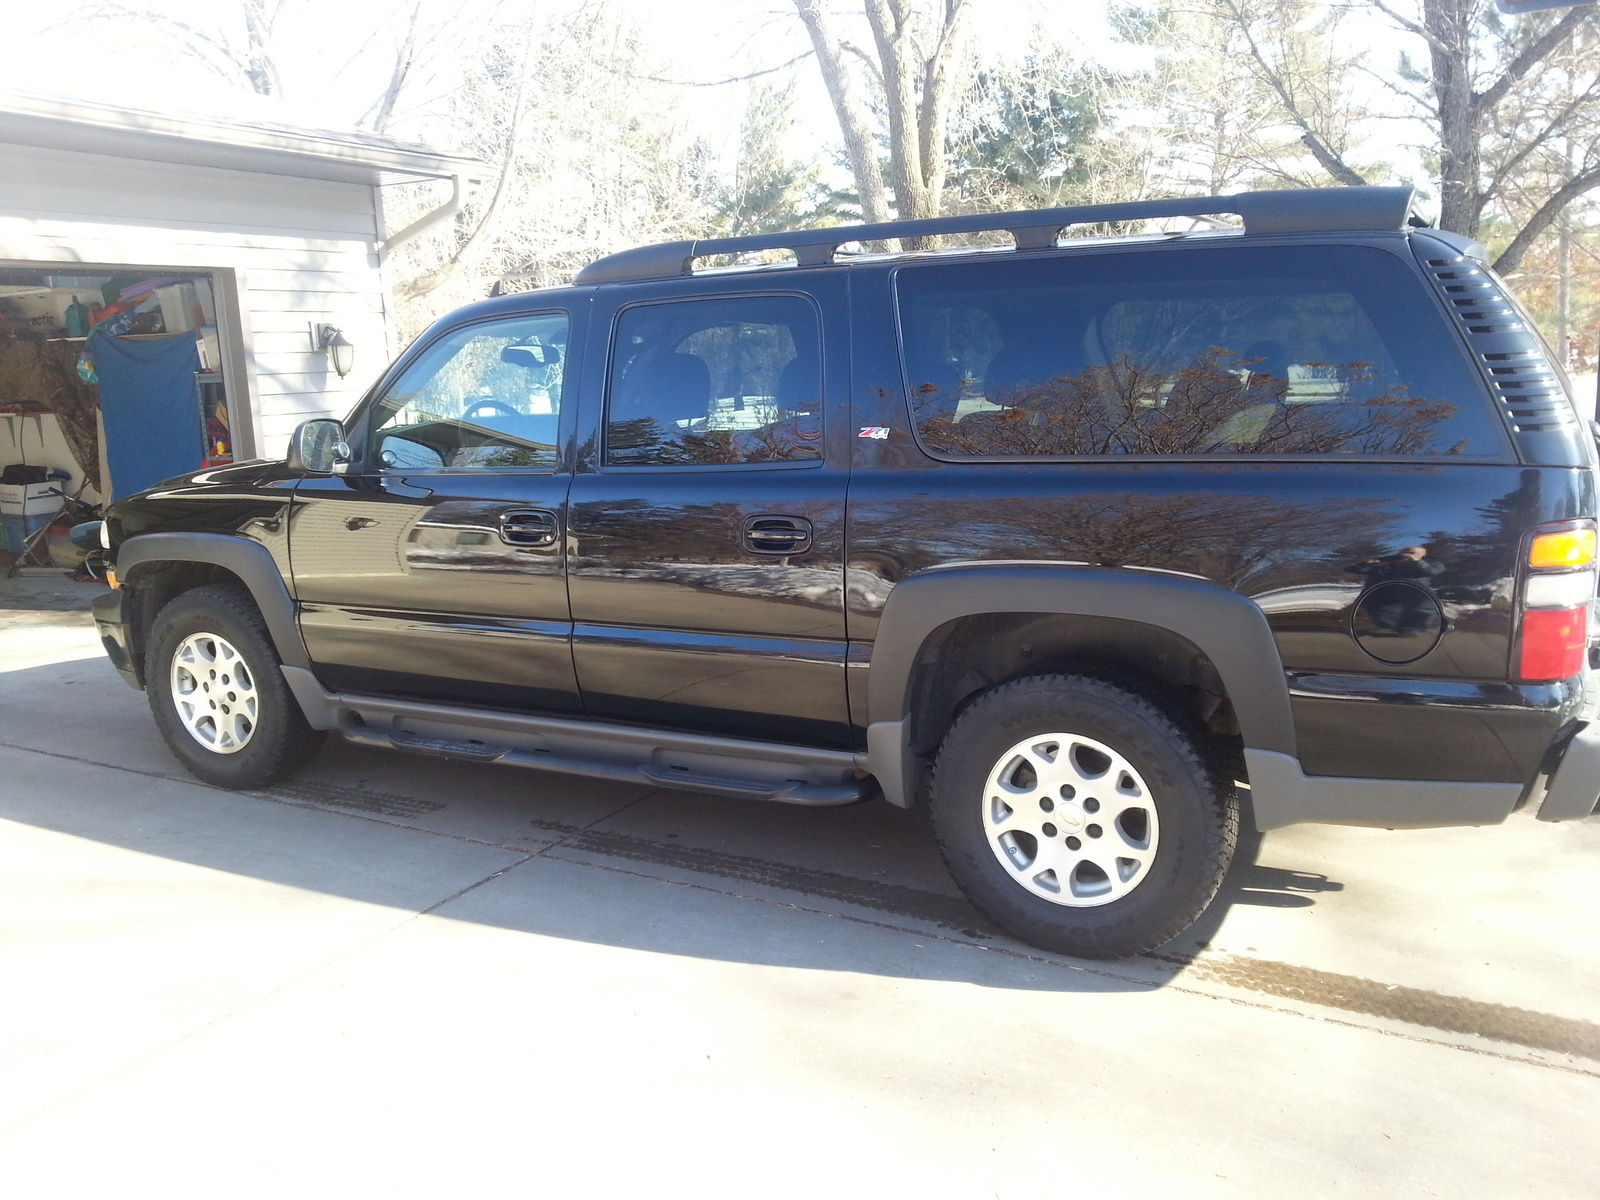 2006 chevrolet suburban ls 1500 4wd picture of 2006 chevrolet suburban ls 1500 4dr suv 4wd. Black Bedroom Furniture Sets. Home Design Ideas